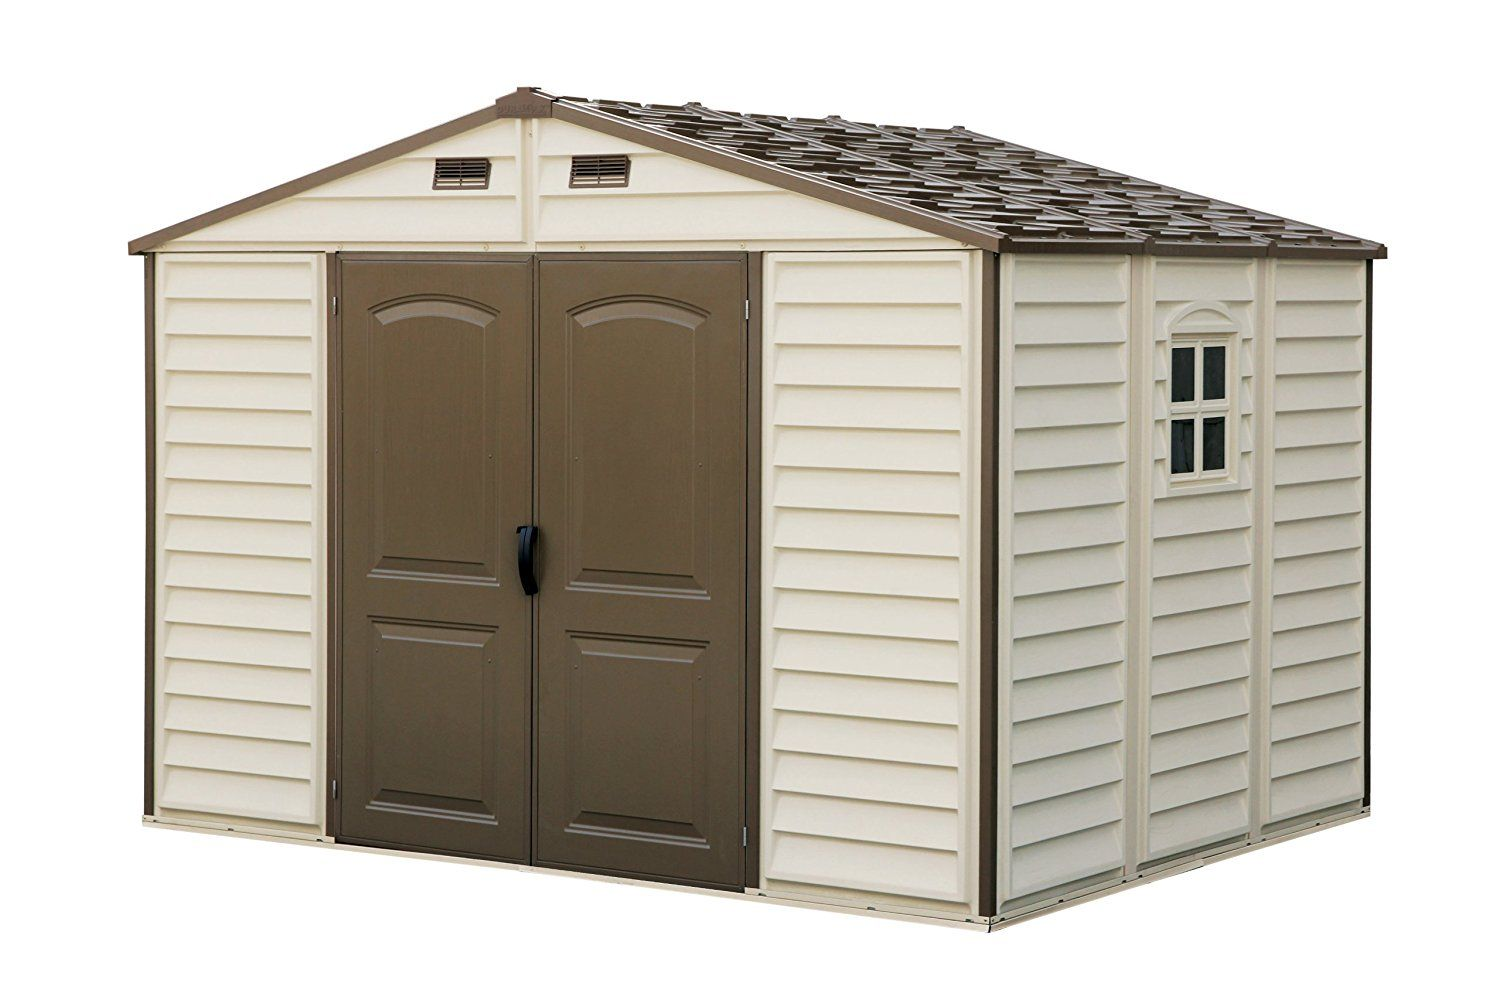 Woodside 10 X 8 Vinyl Storage Shed With Foundation And Three Fixed Window Want To Know More Click On The Imag Vinyl Sheds Plastic Sheds Vinyl Storage Sheds